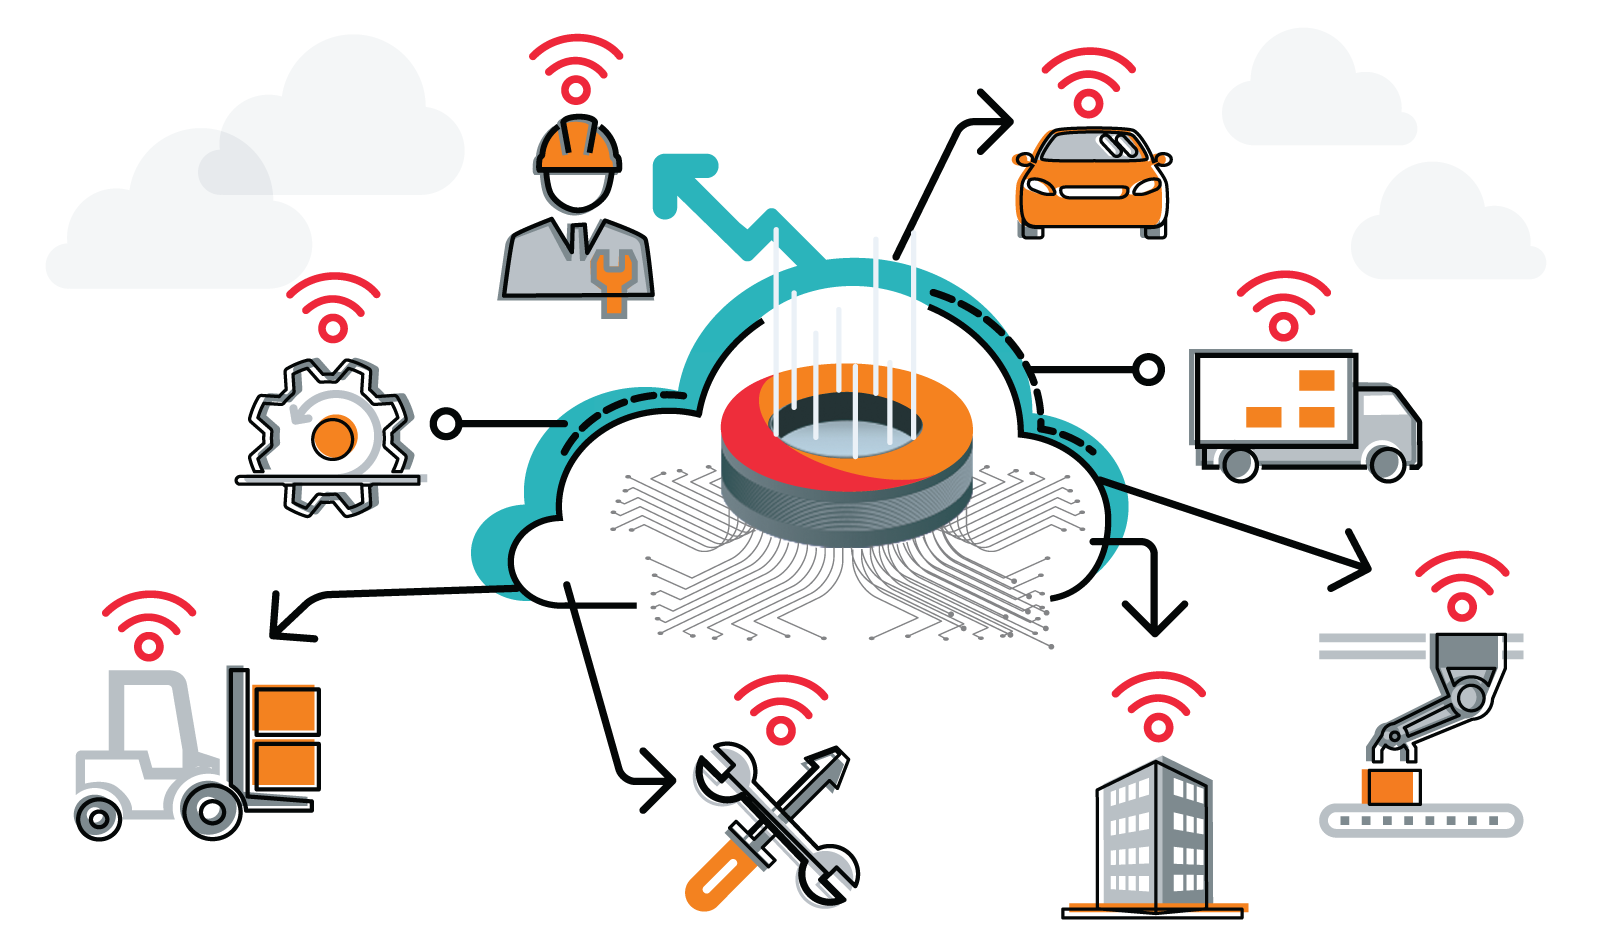 Streamline IoT solution deployments